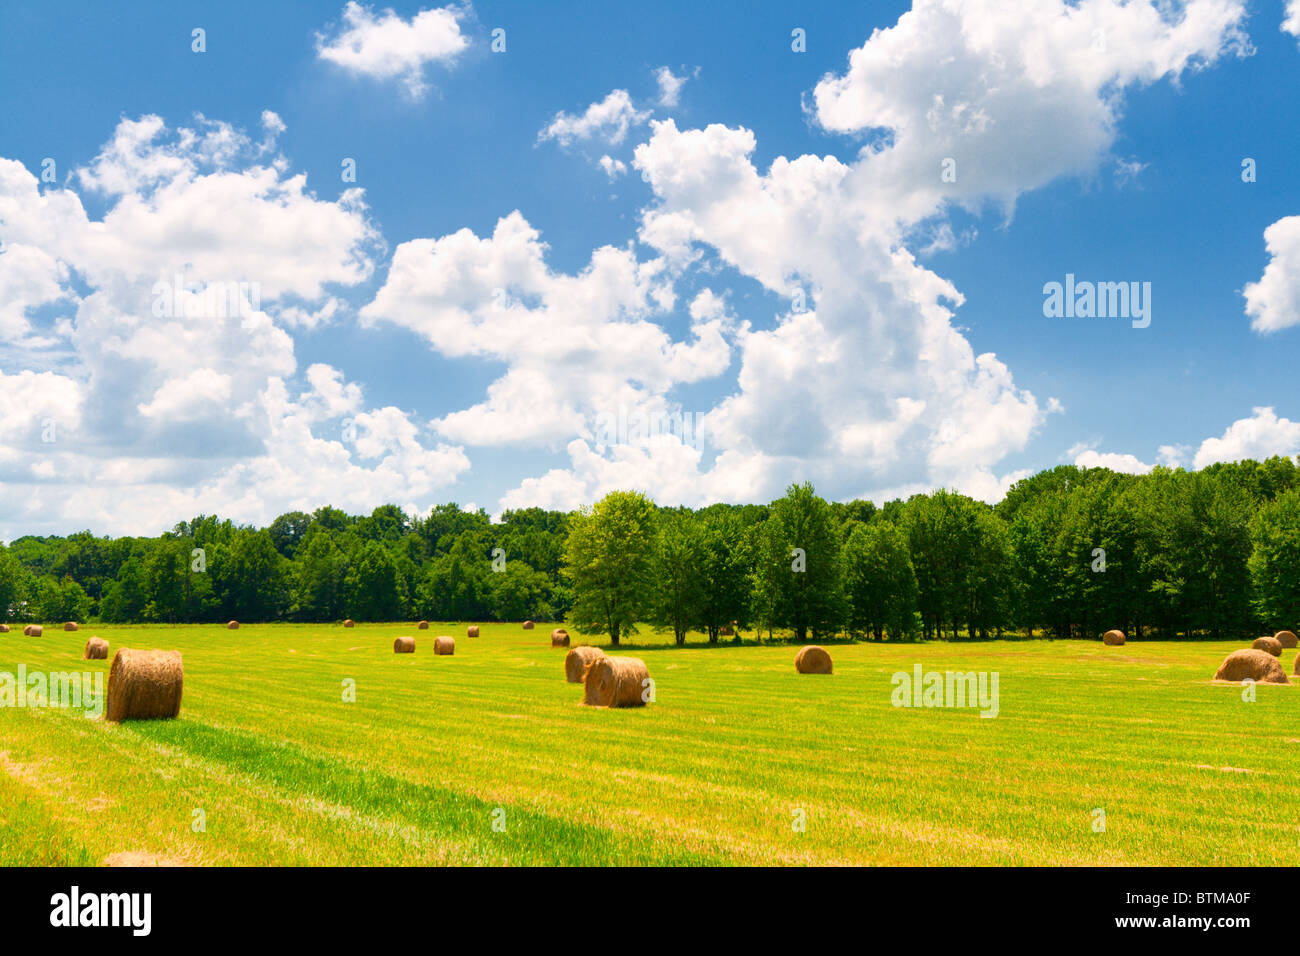 Hay bales in a green field with cloudy skies - Stock Image